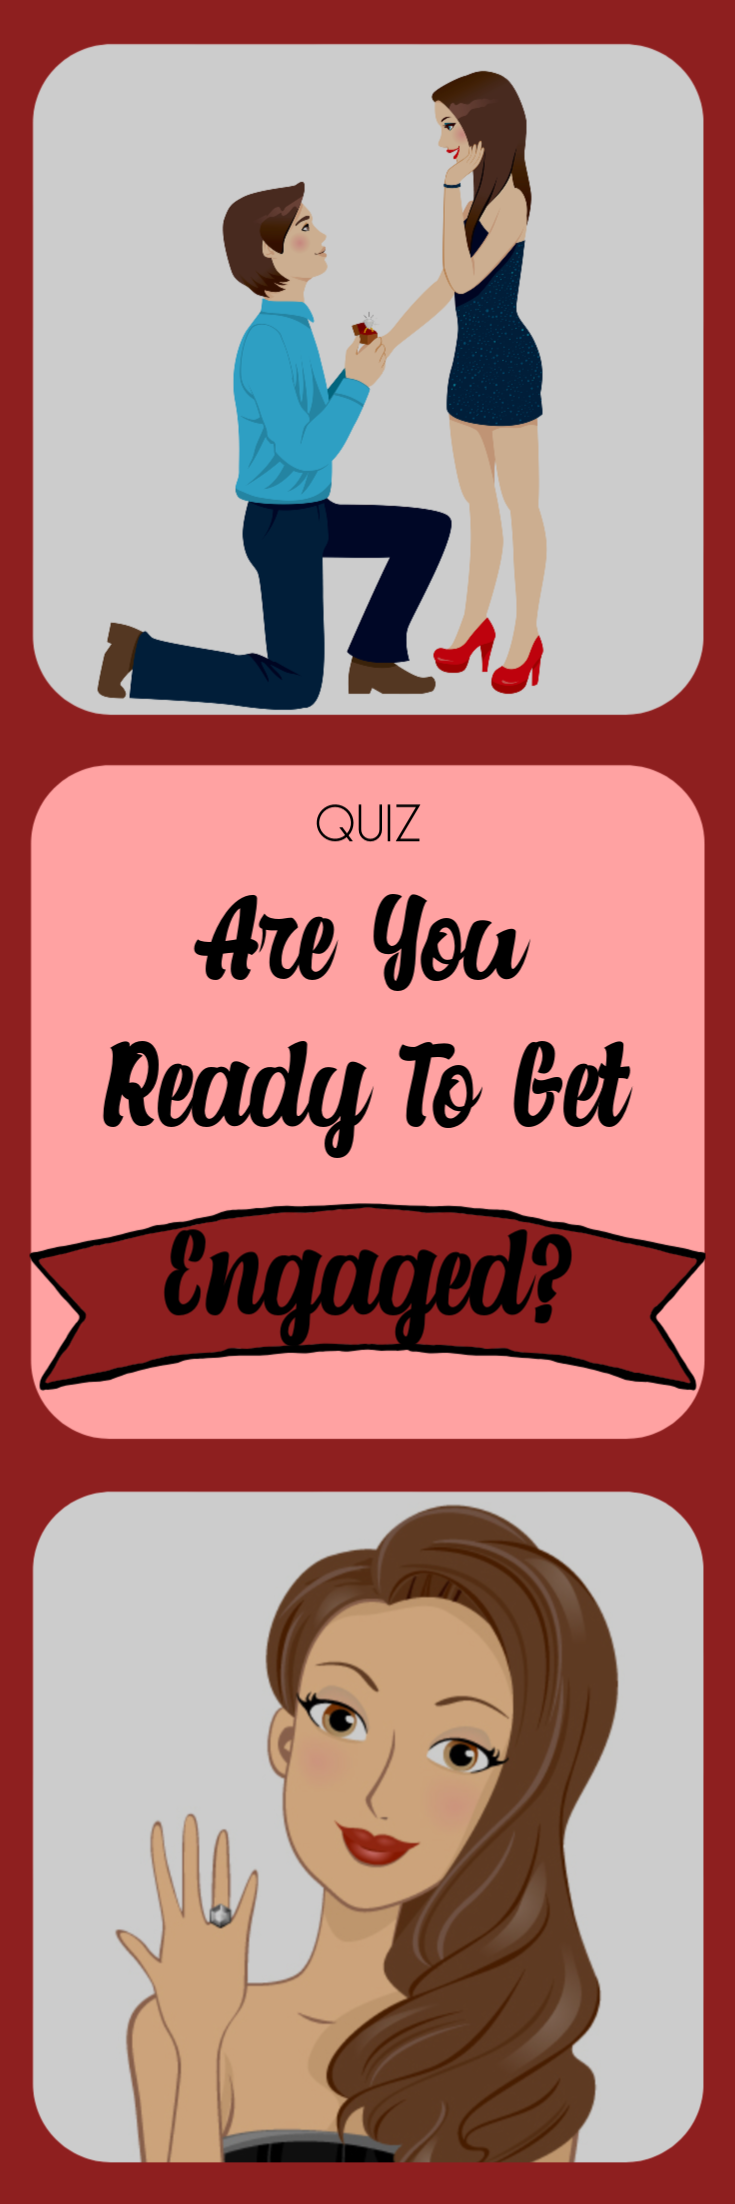 Are You Ready to Get Engaged? | Engagement quiz